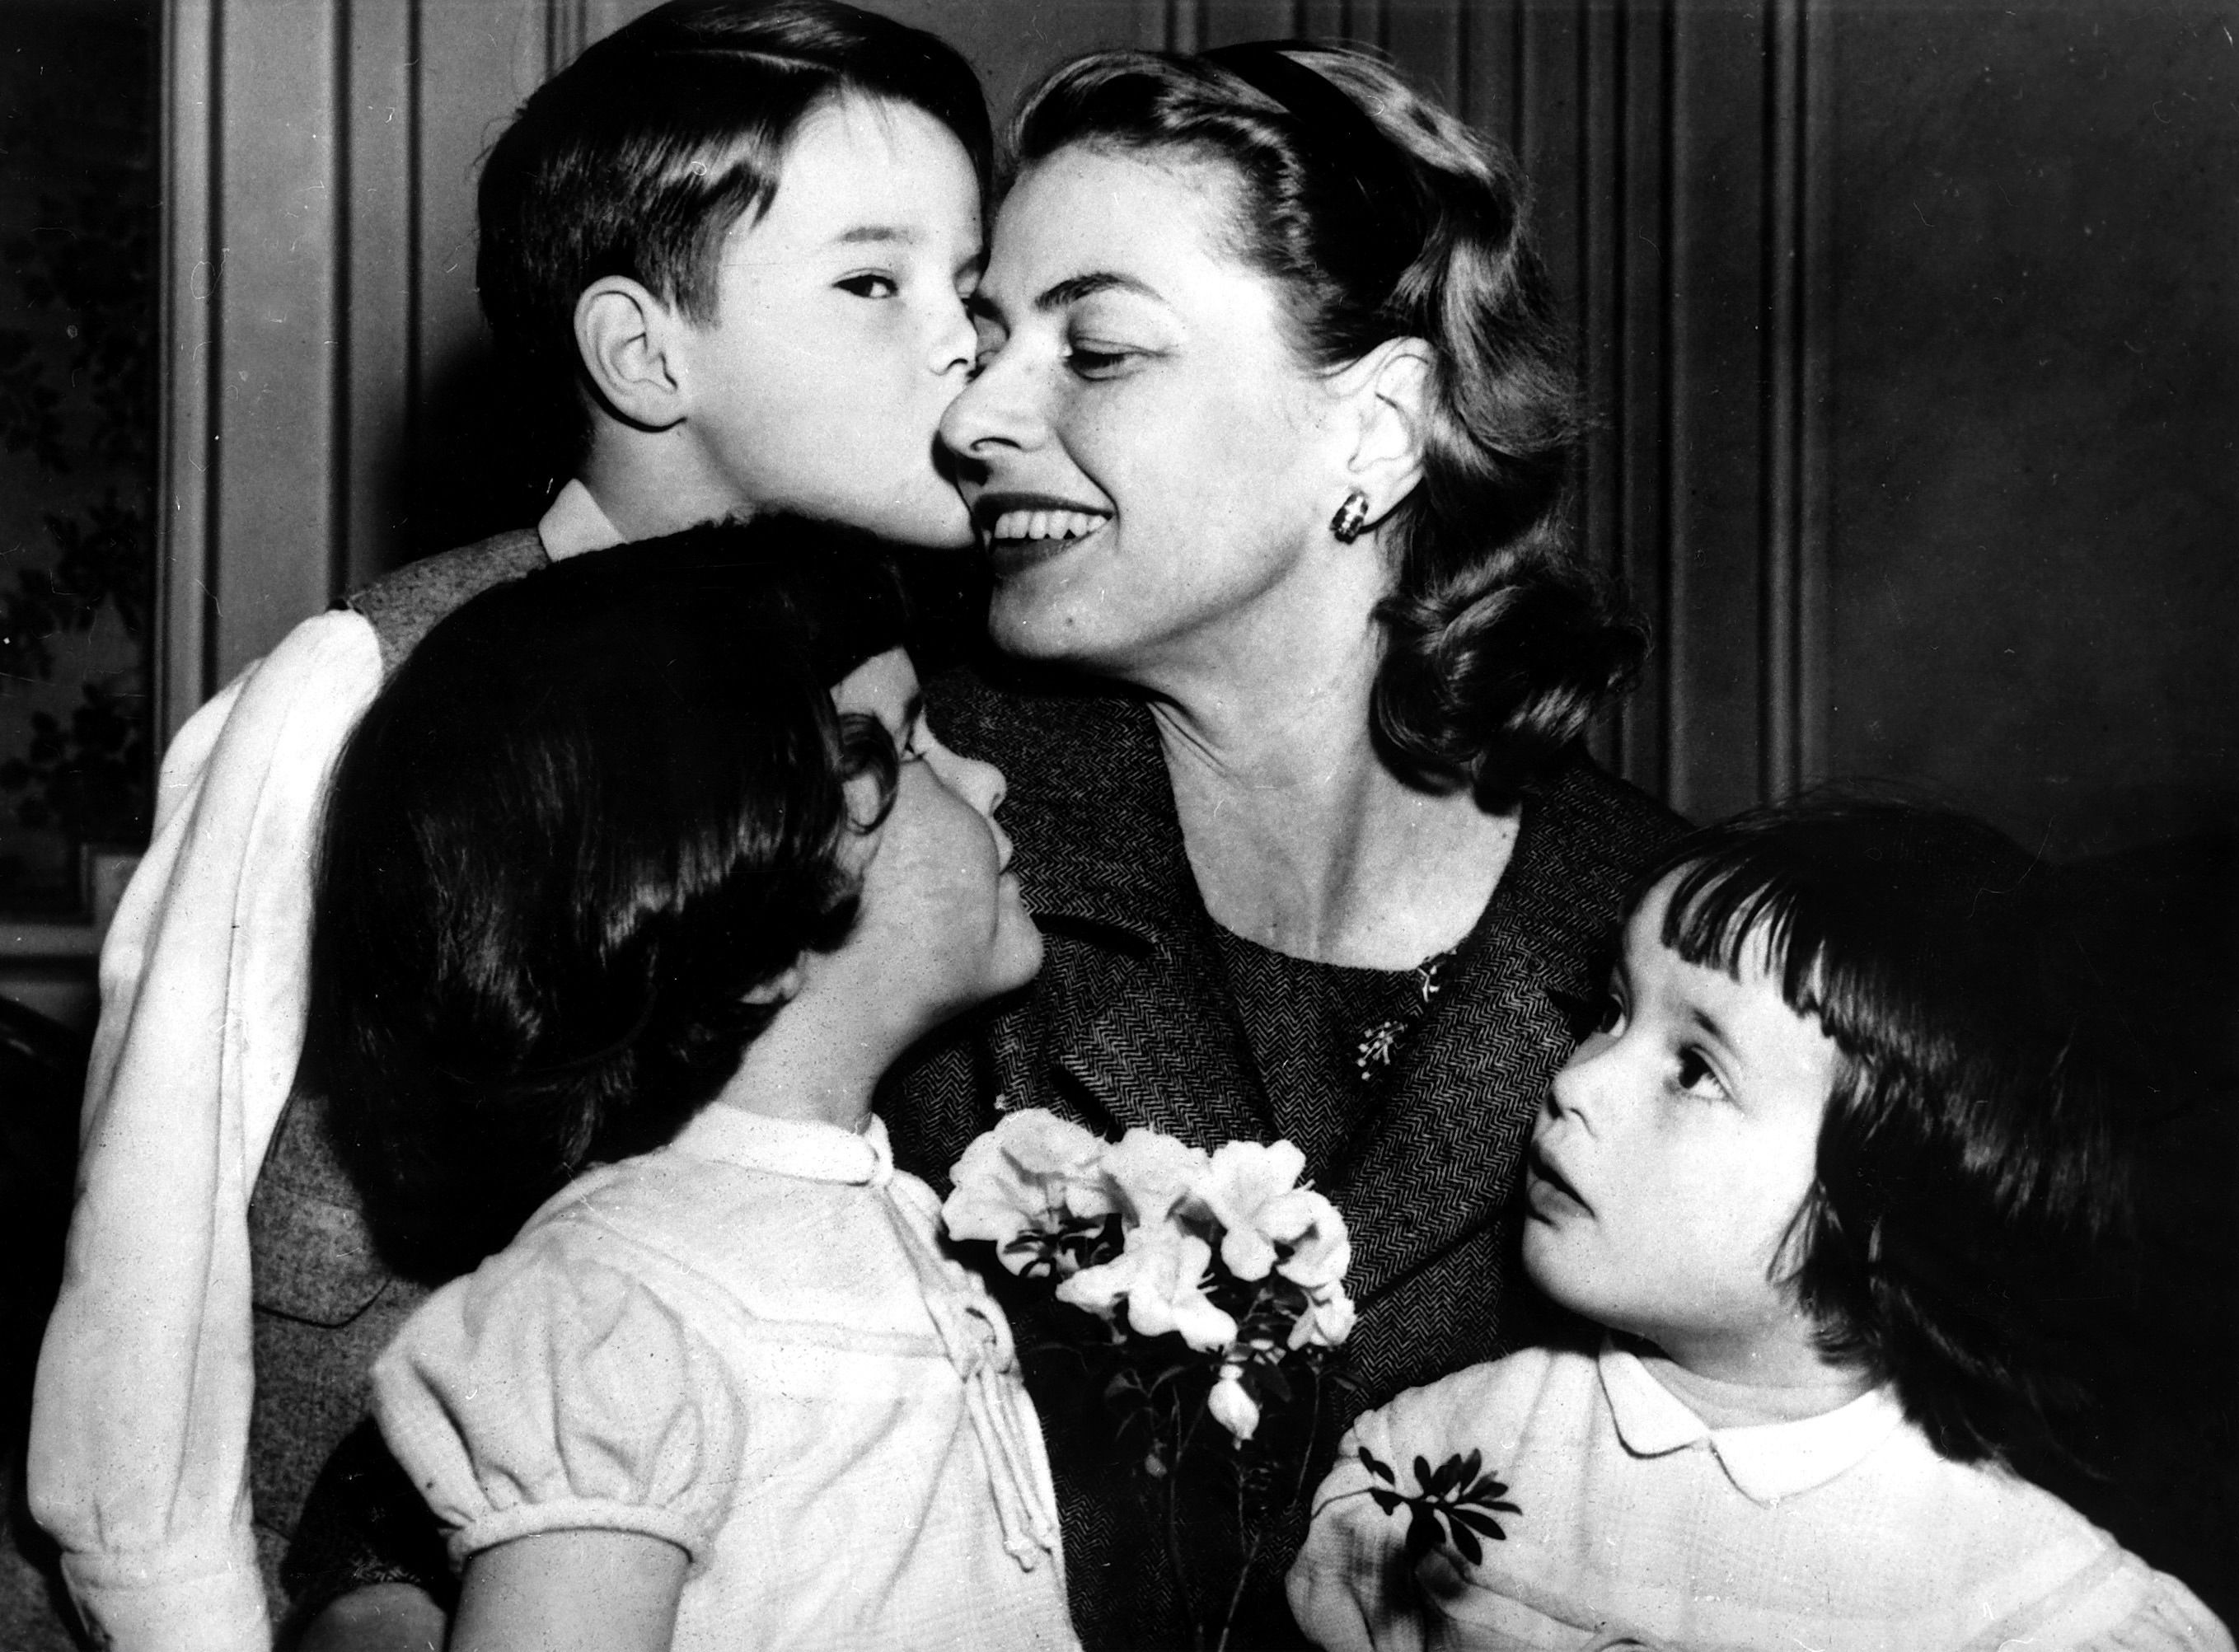 Ingrid Bergman with her children by Roberto Rossellini: Robertino, Isabella and Isotta | Source: Getty Images